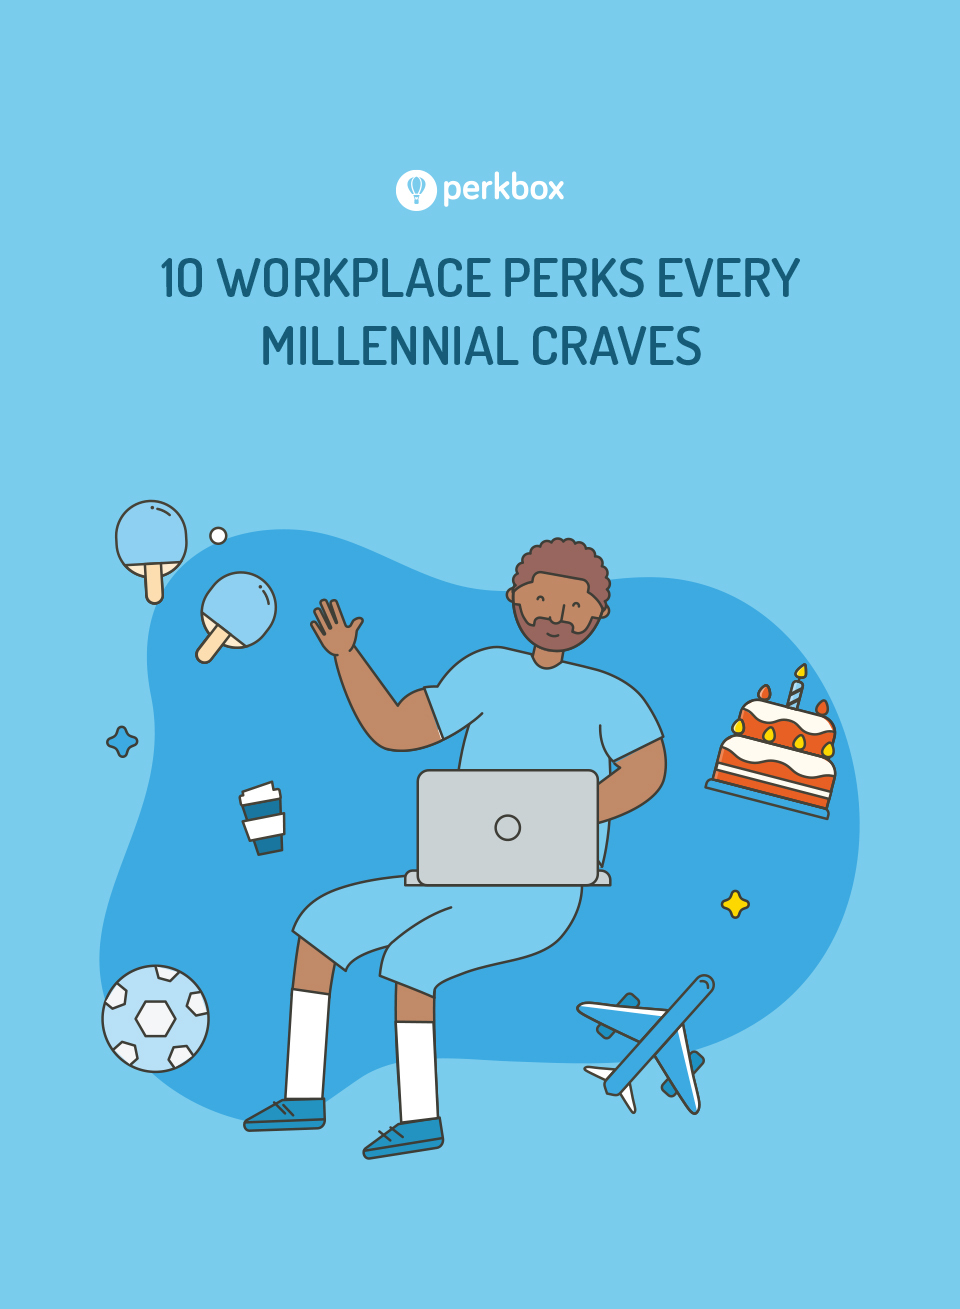 10 Workplace Perks Every Millennial Craves